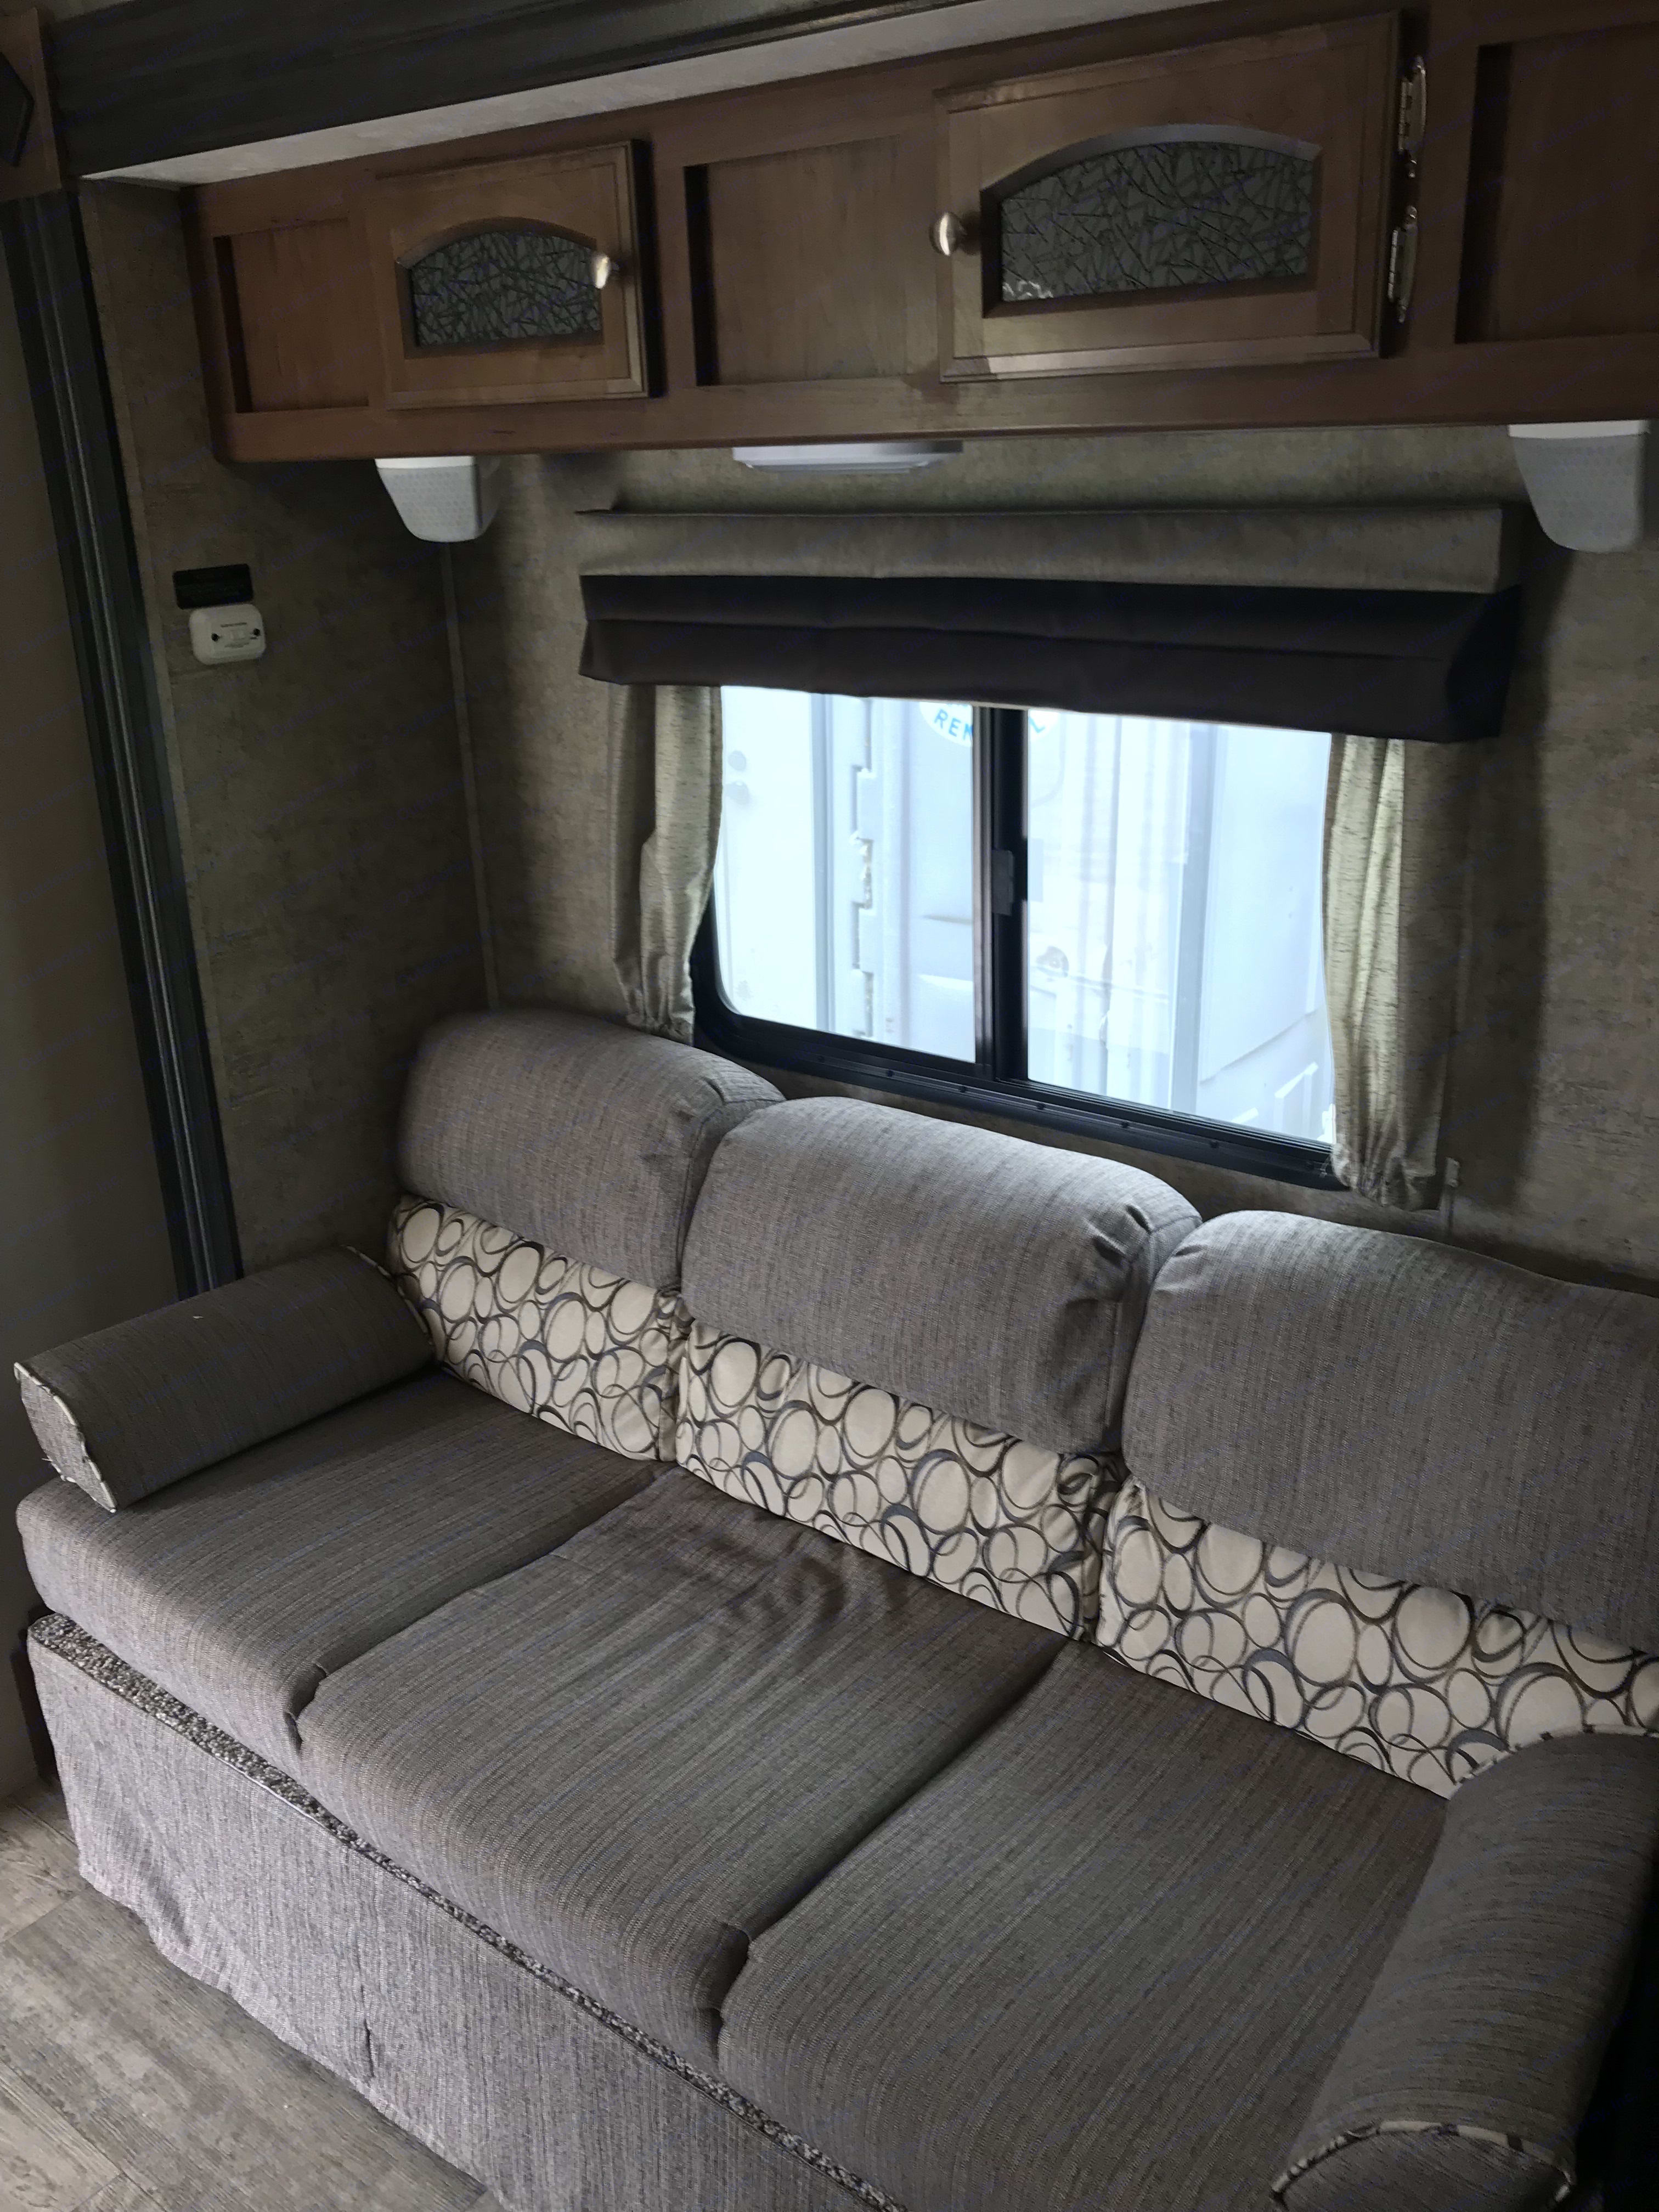 Couch are folds out to a bed. Coachmen 192RBS FREEDOM EXPRESS 2017